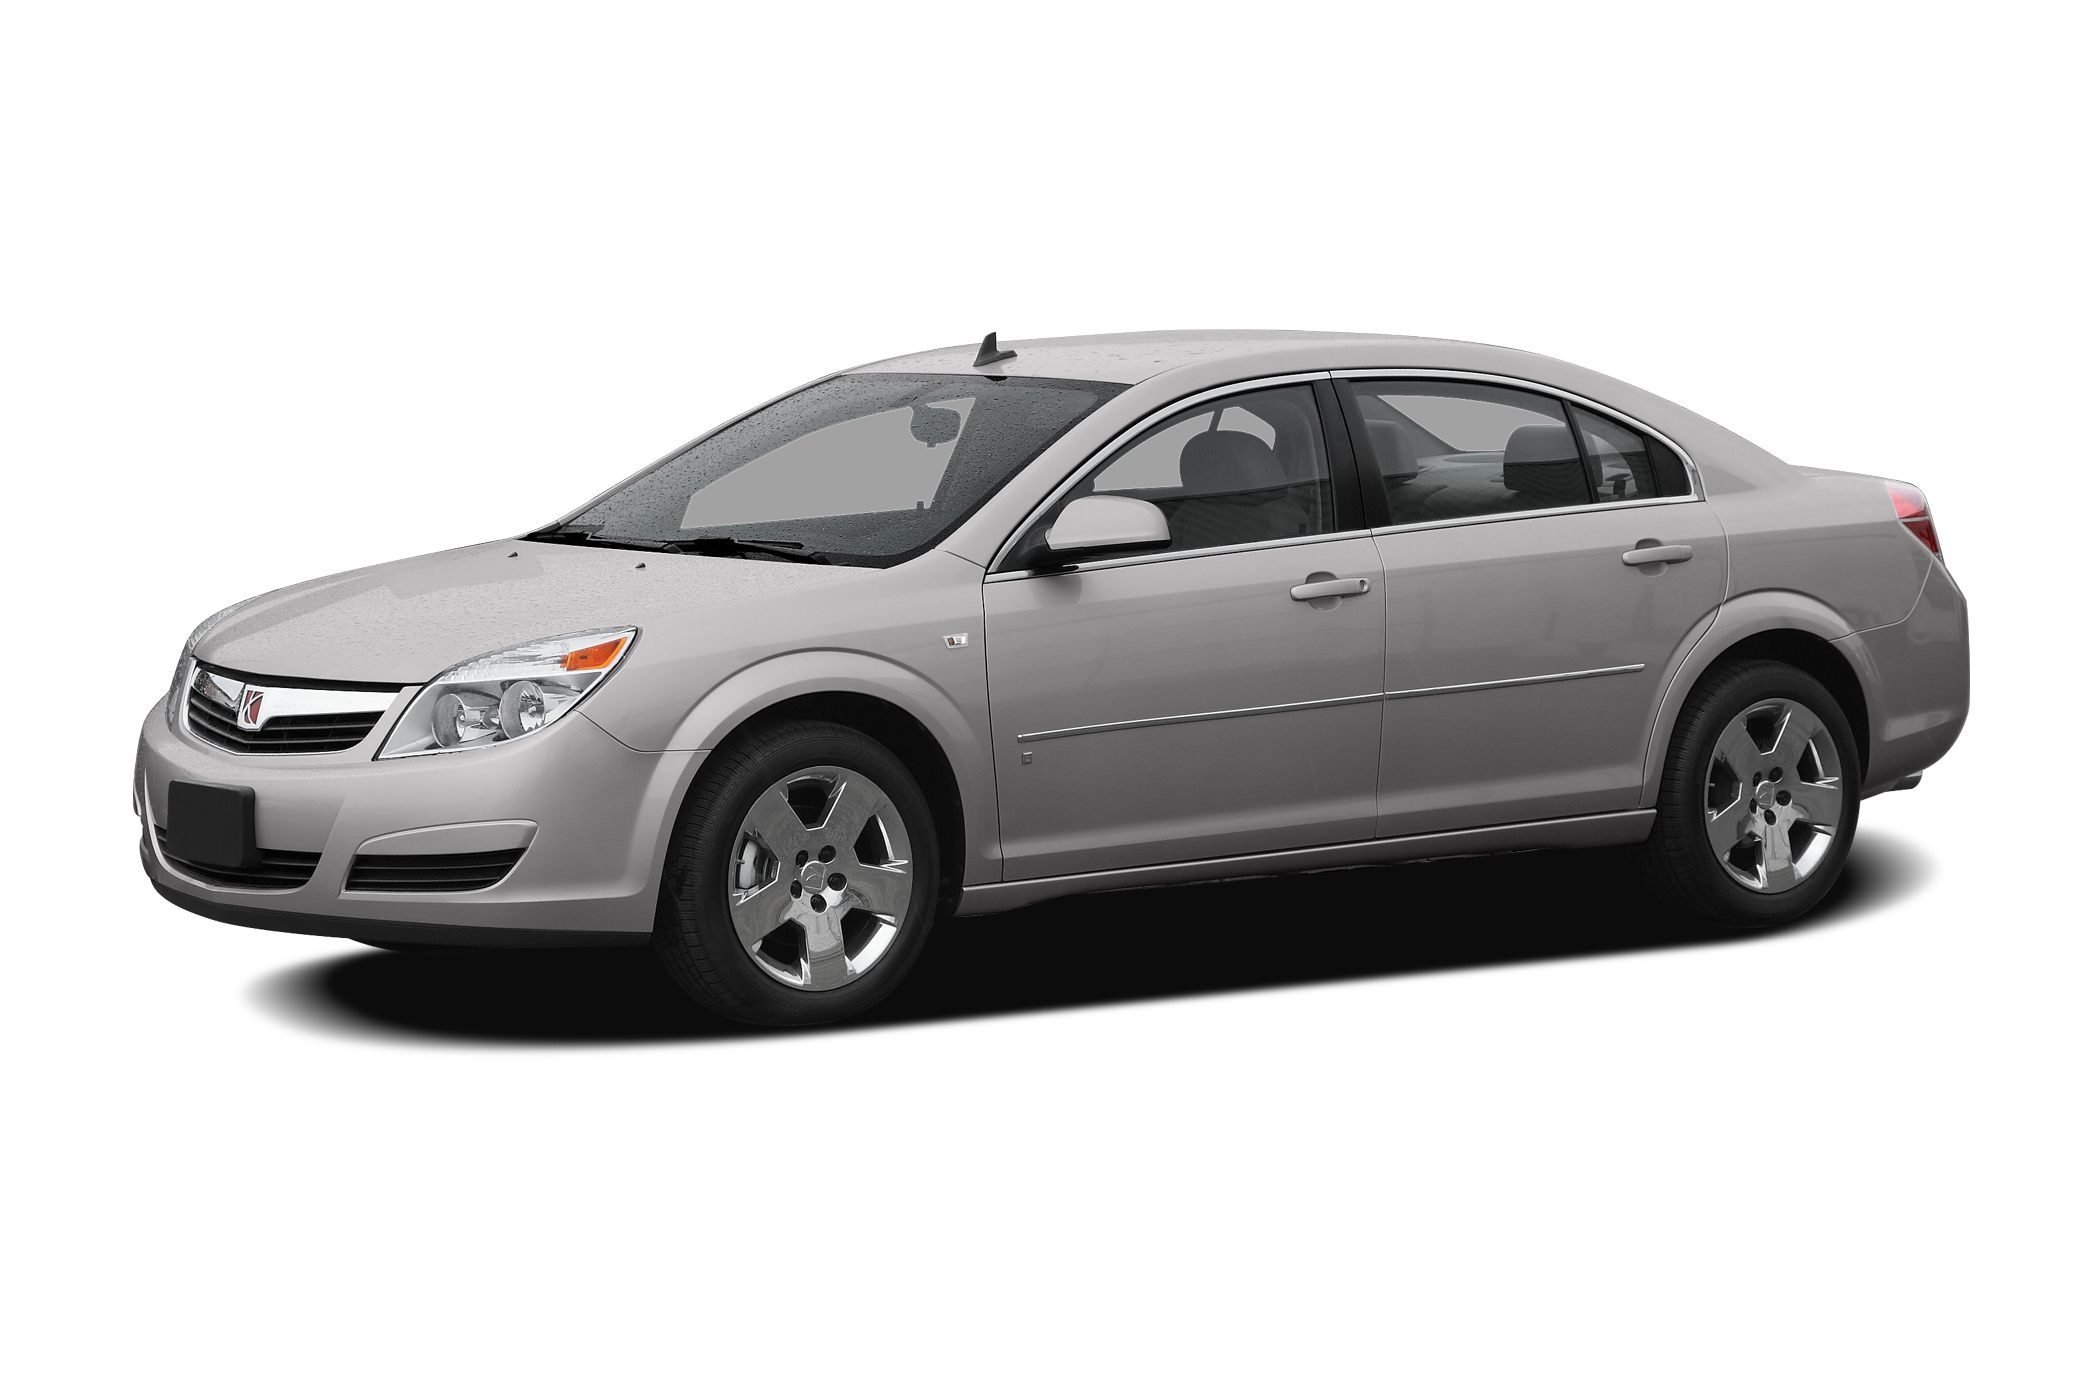 2007 Saturn Aura XR Sedan for sale in Northborough for $7,950 with 54,822 miles